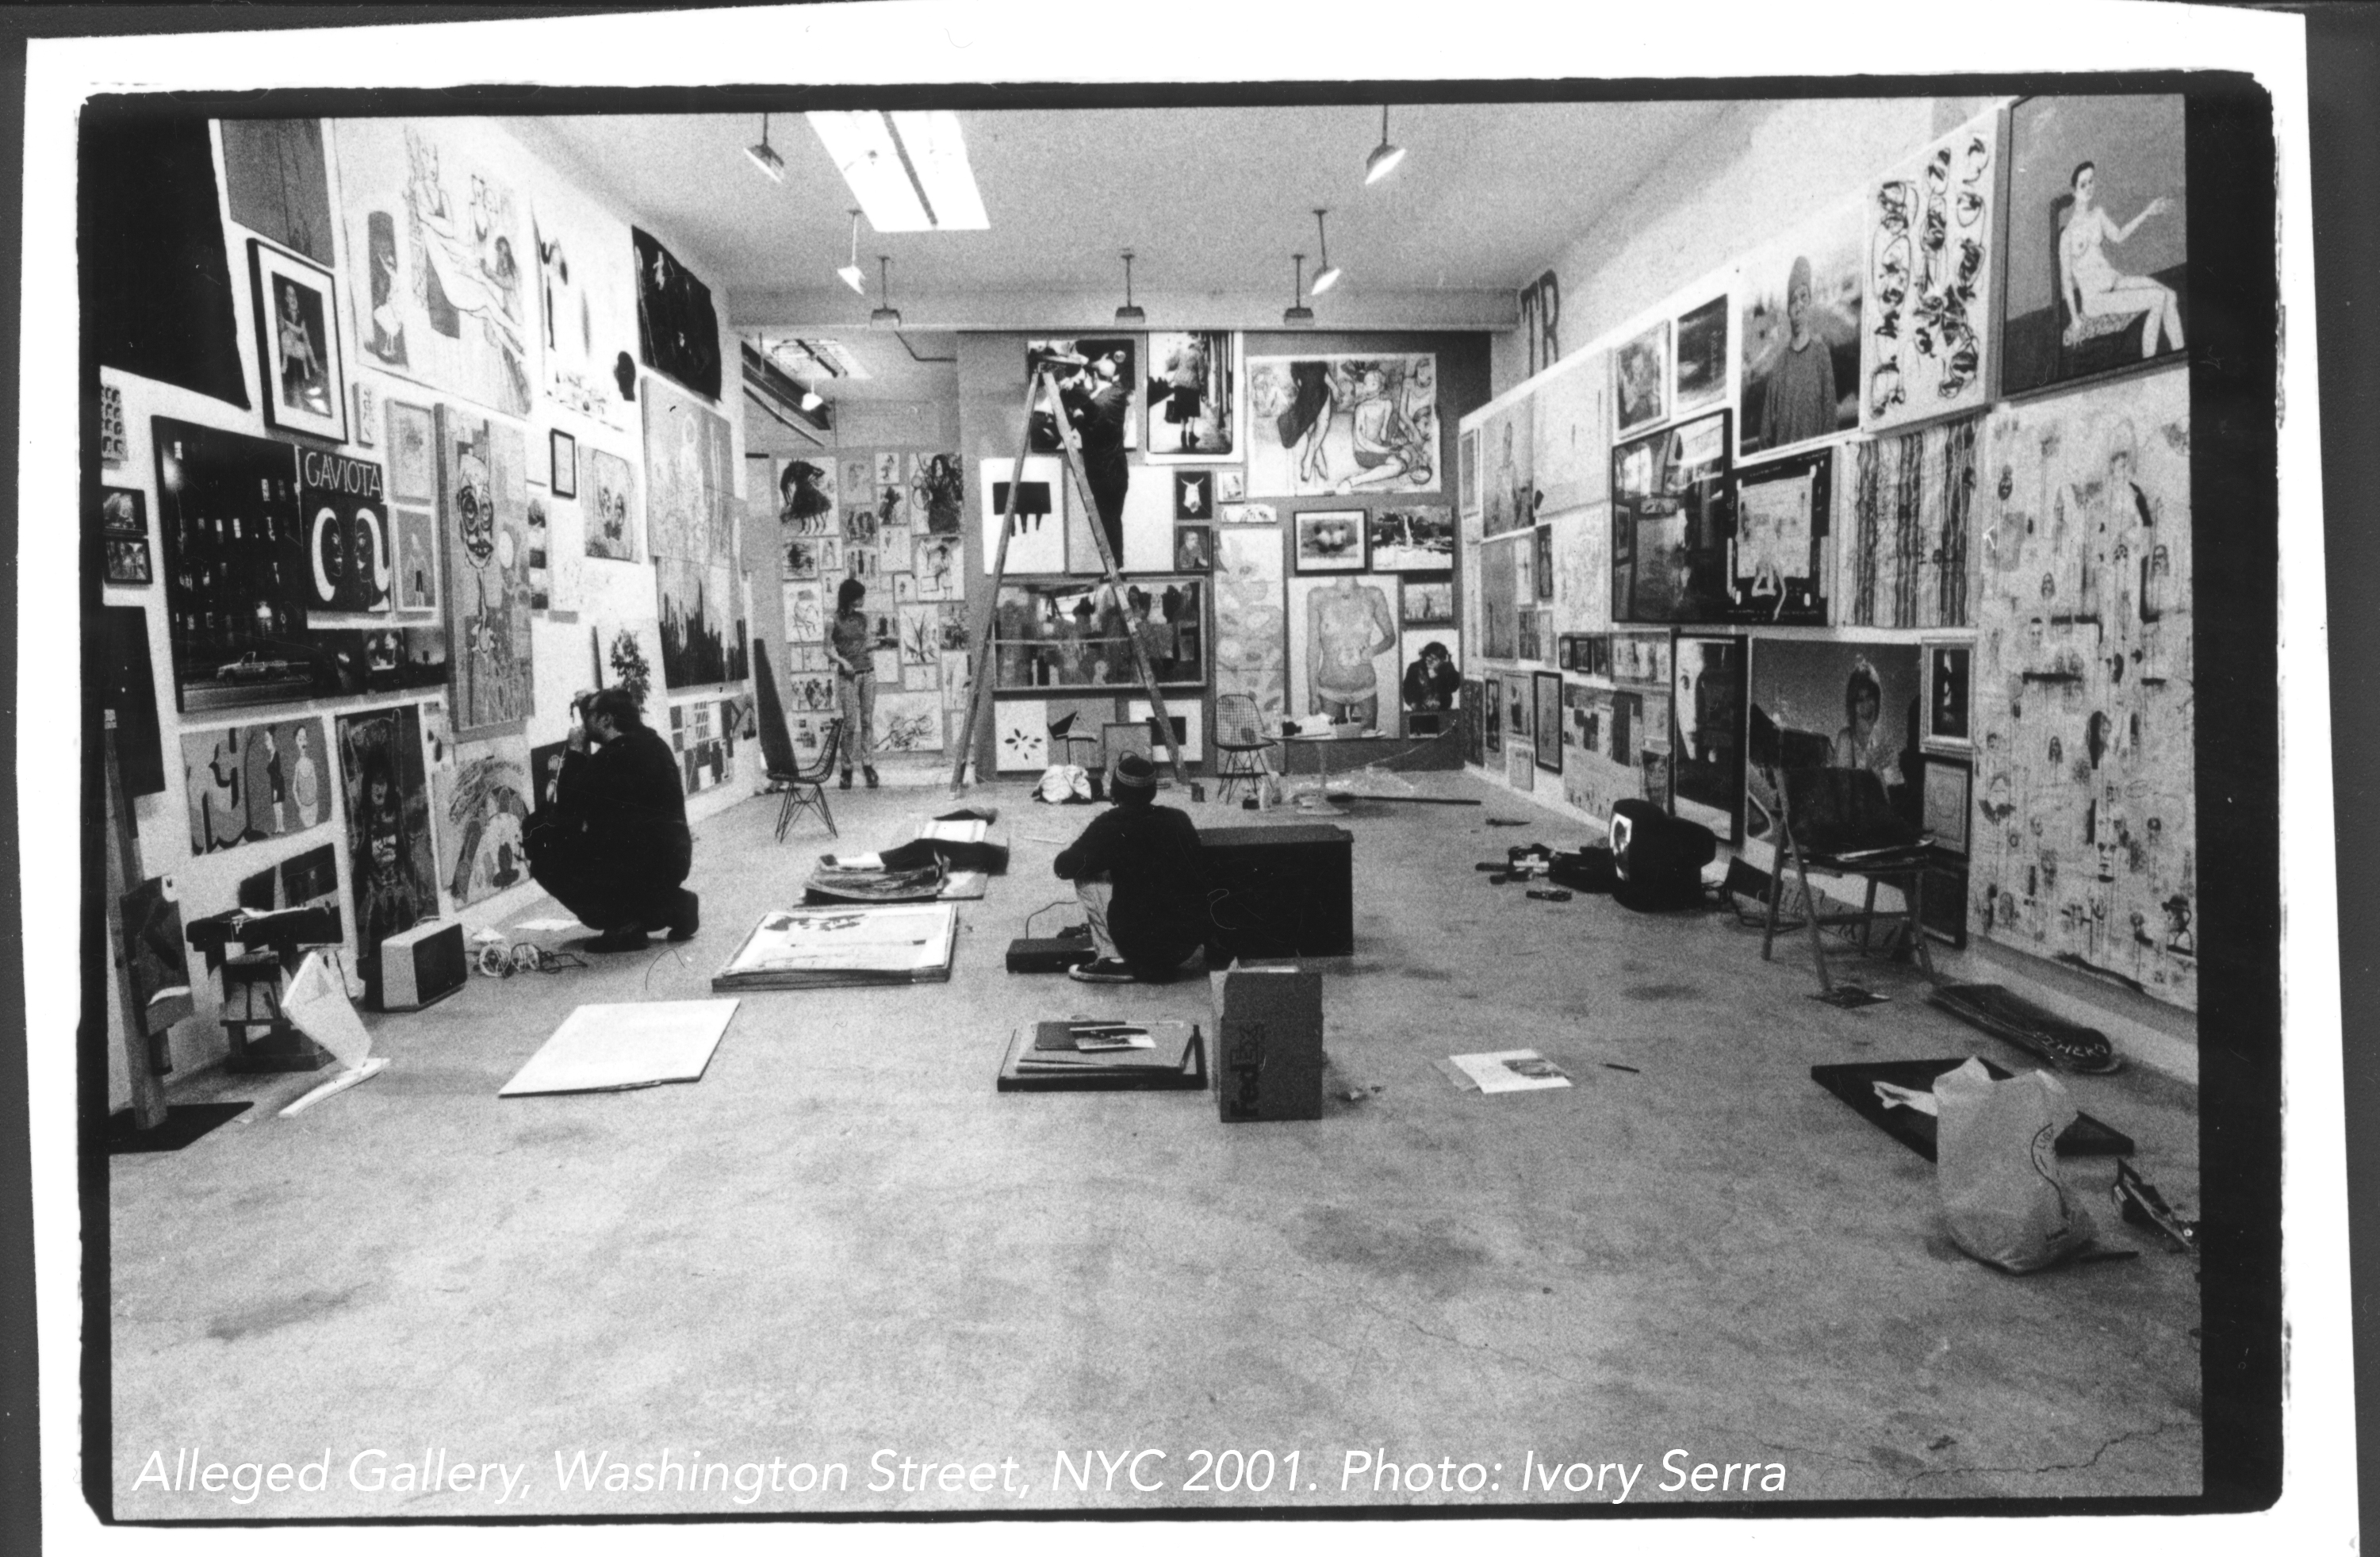 Alleged Gallery, Washington Street, NYC 2001. Photo: Ivory Serra